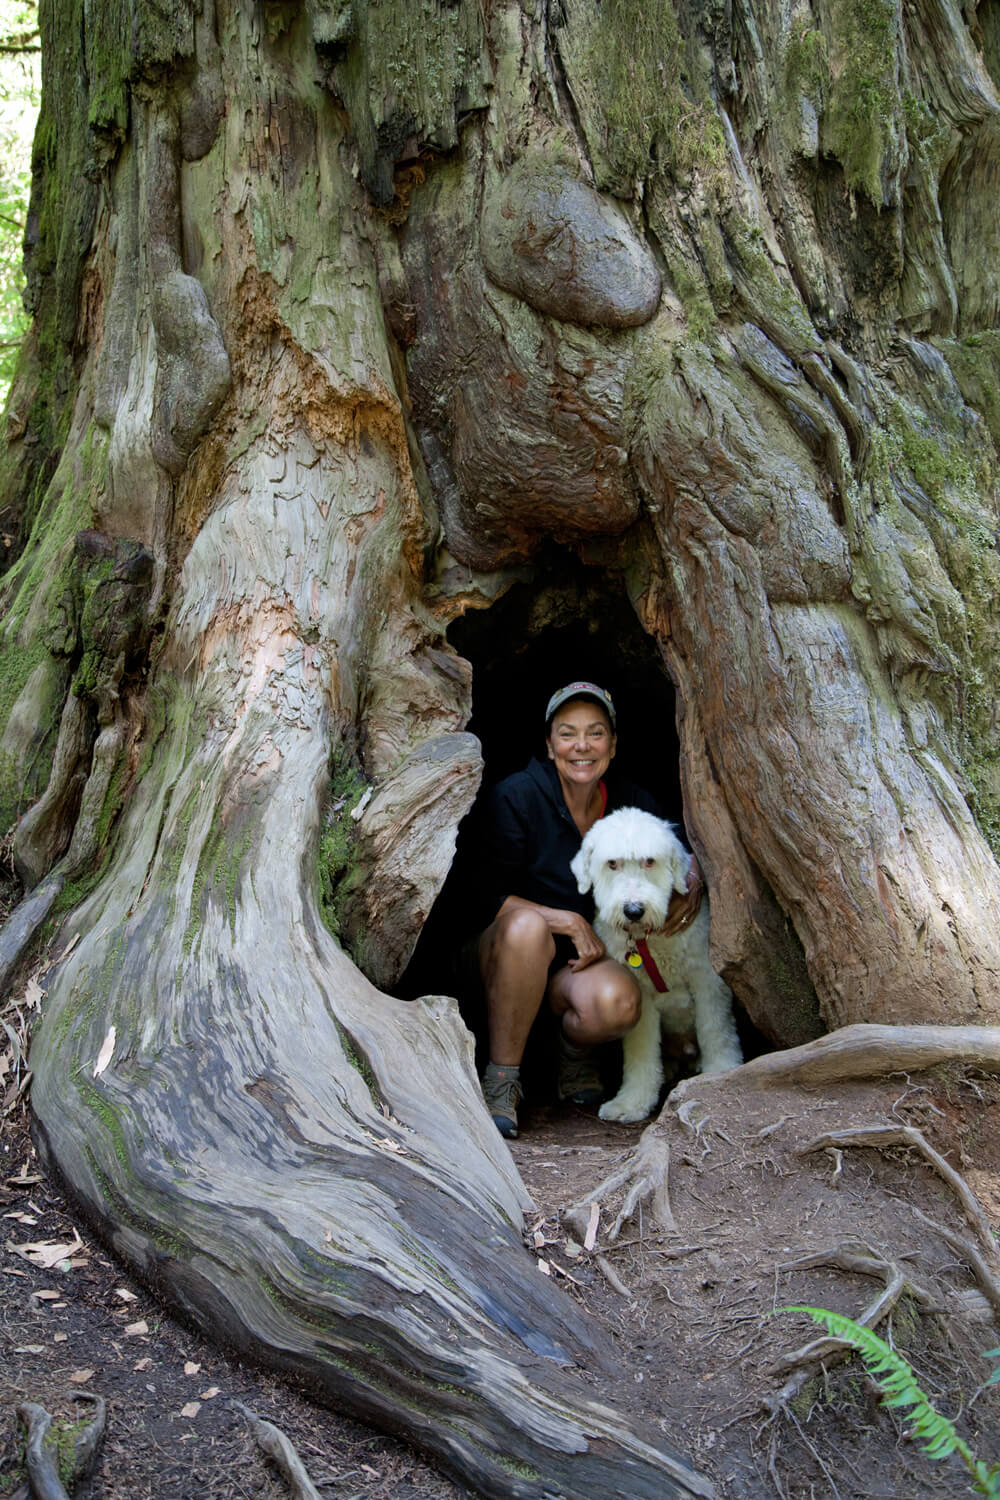 Terry and CharlieDog hanging out in the hollows of the forest.